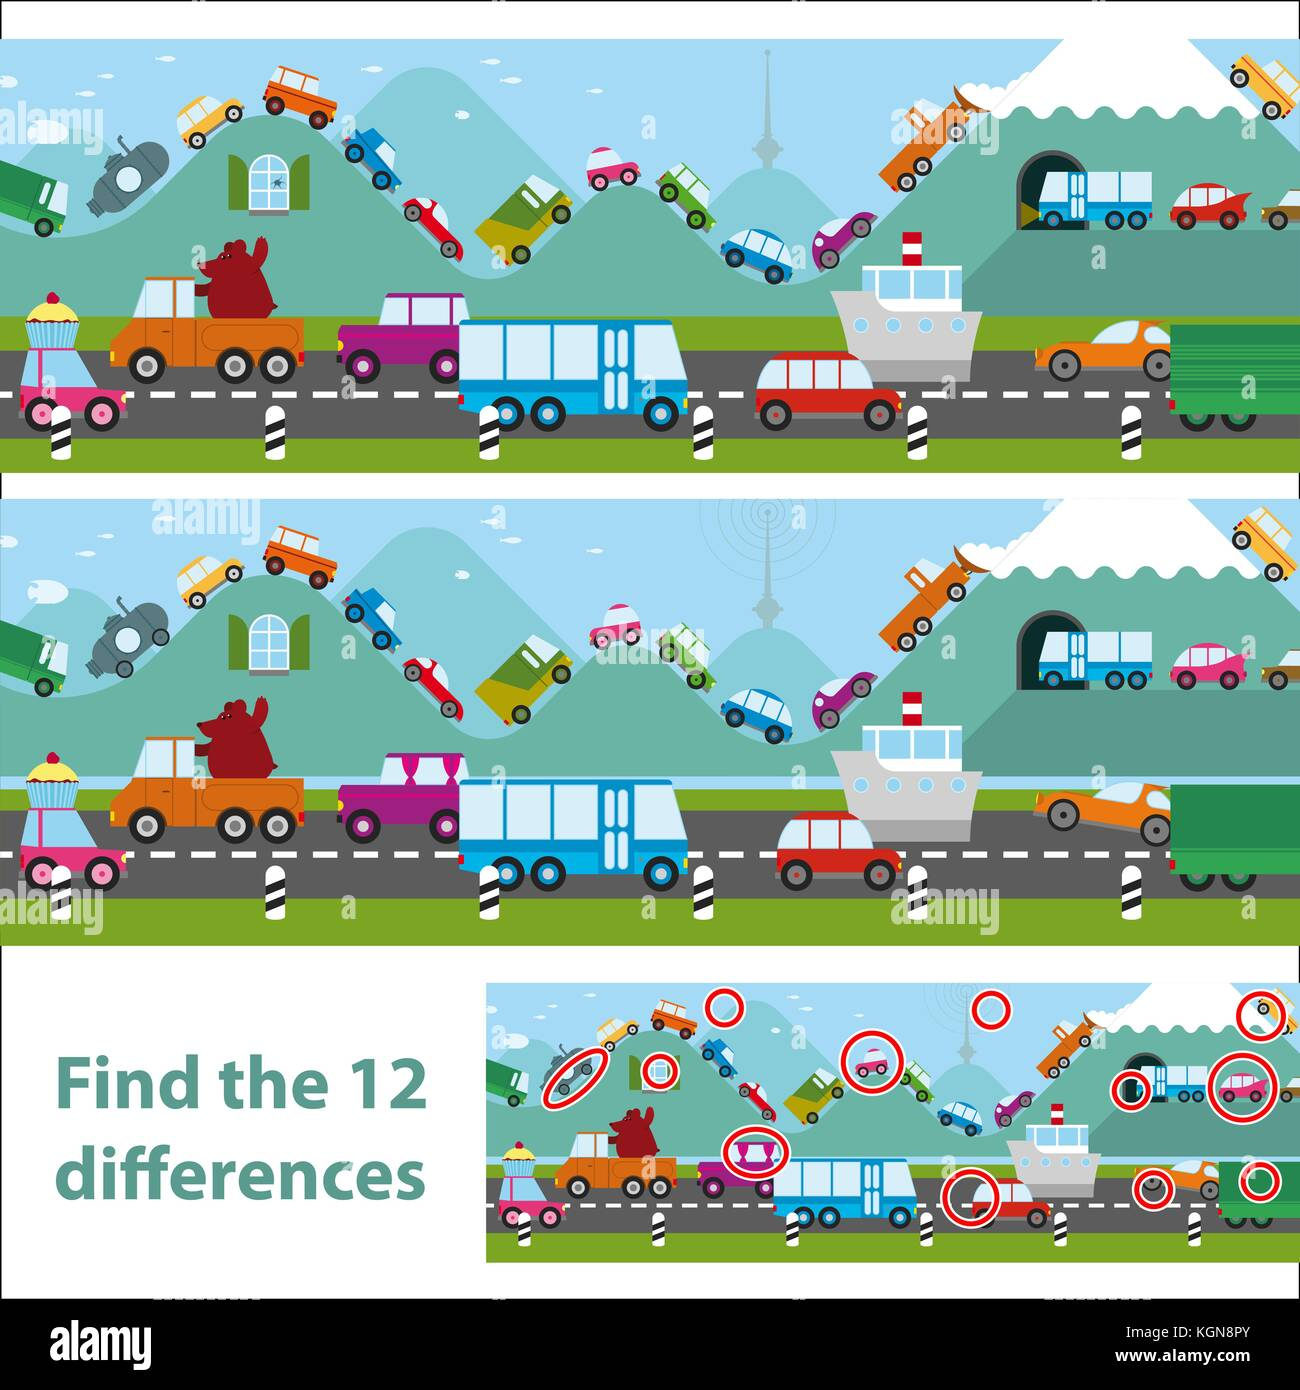 Find differences, education game for children. Transportation theme with different vehicles on a street. - Stock Vector